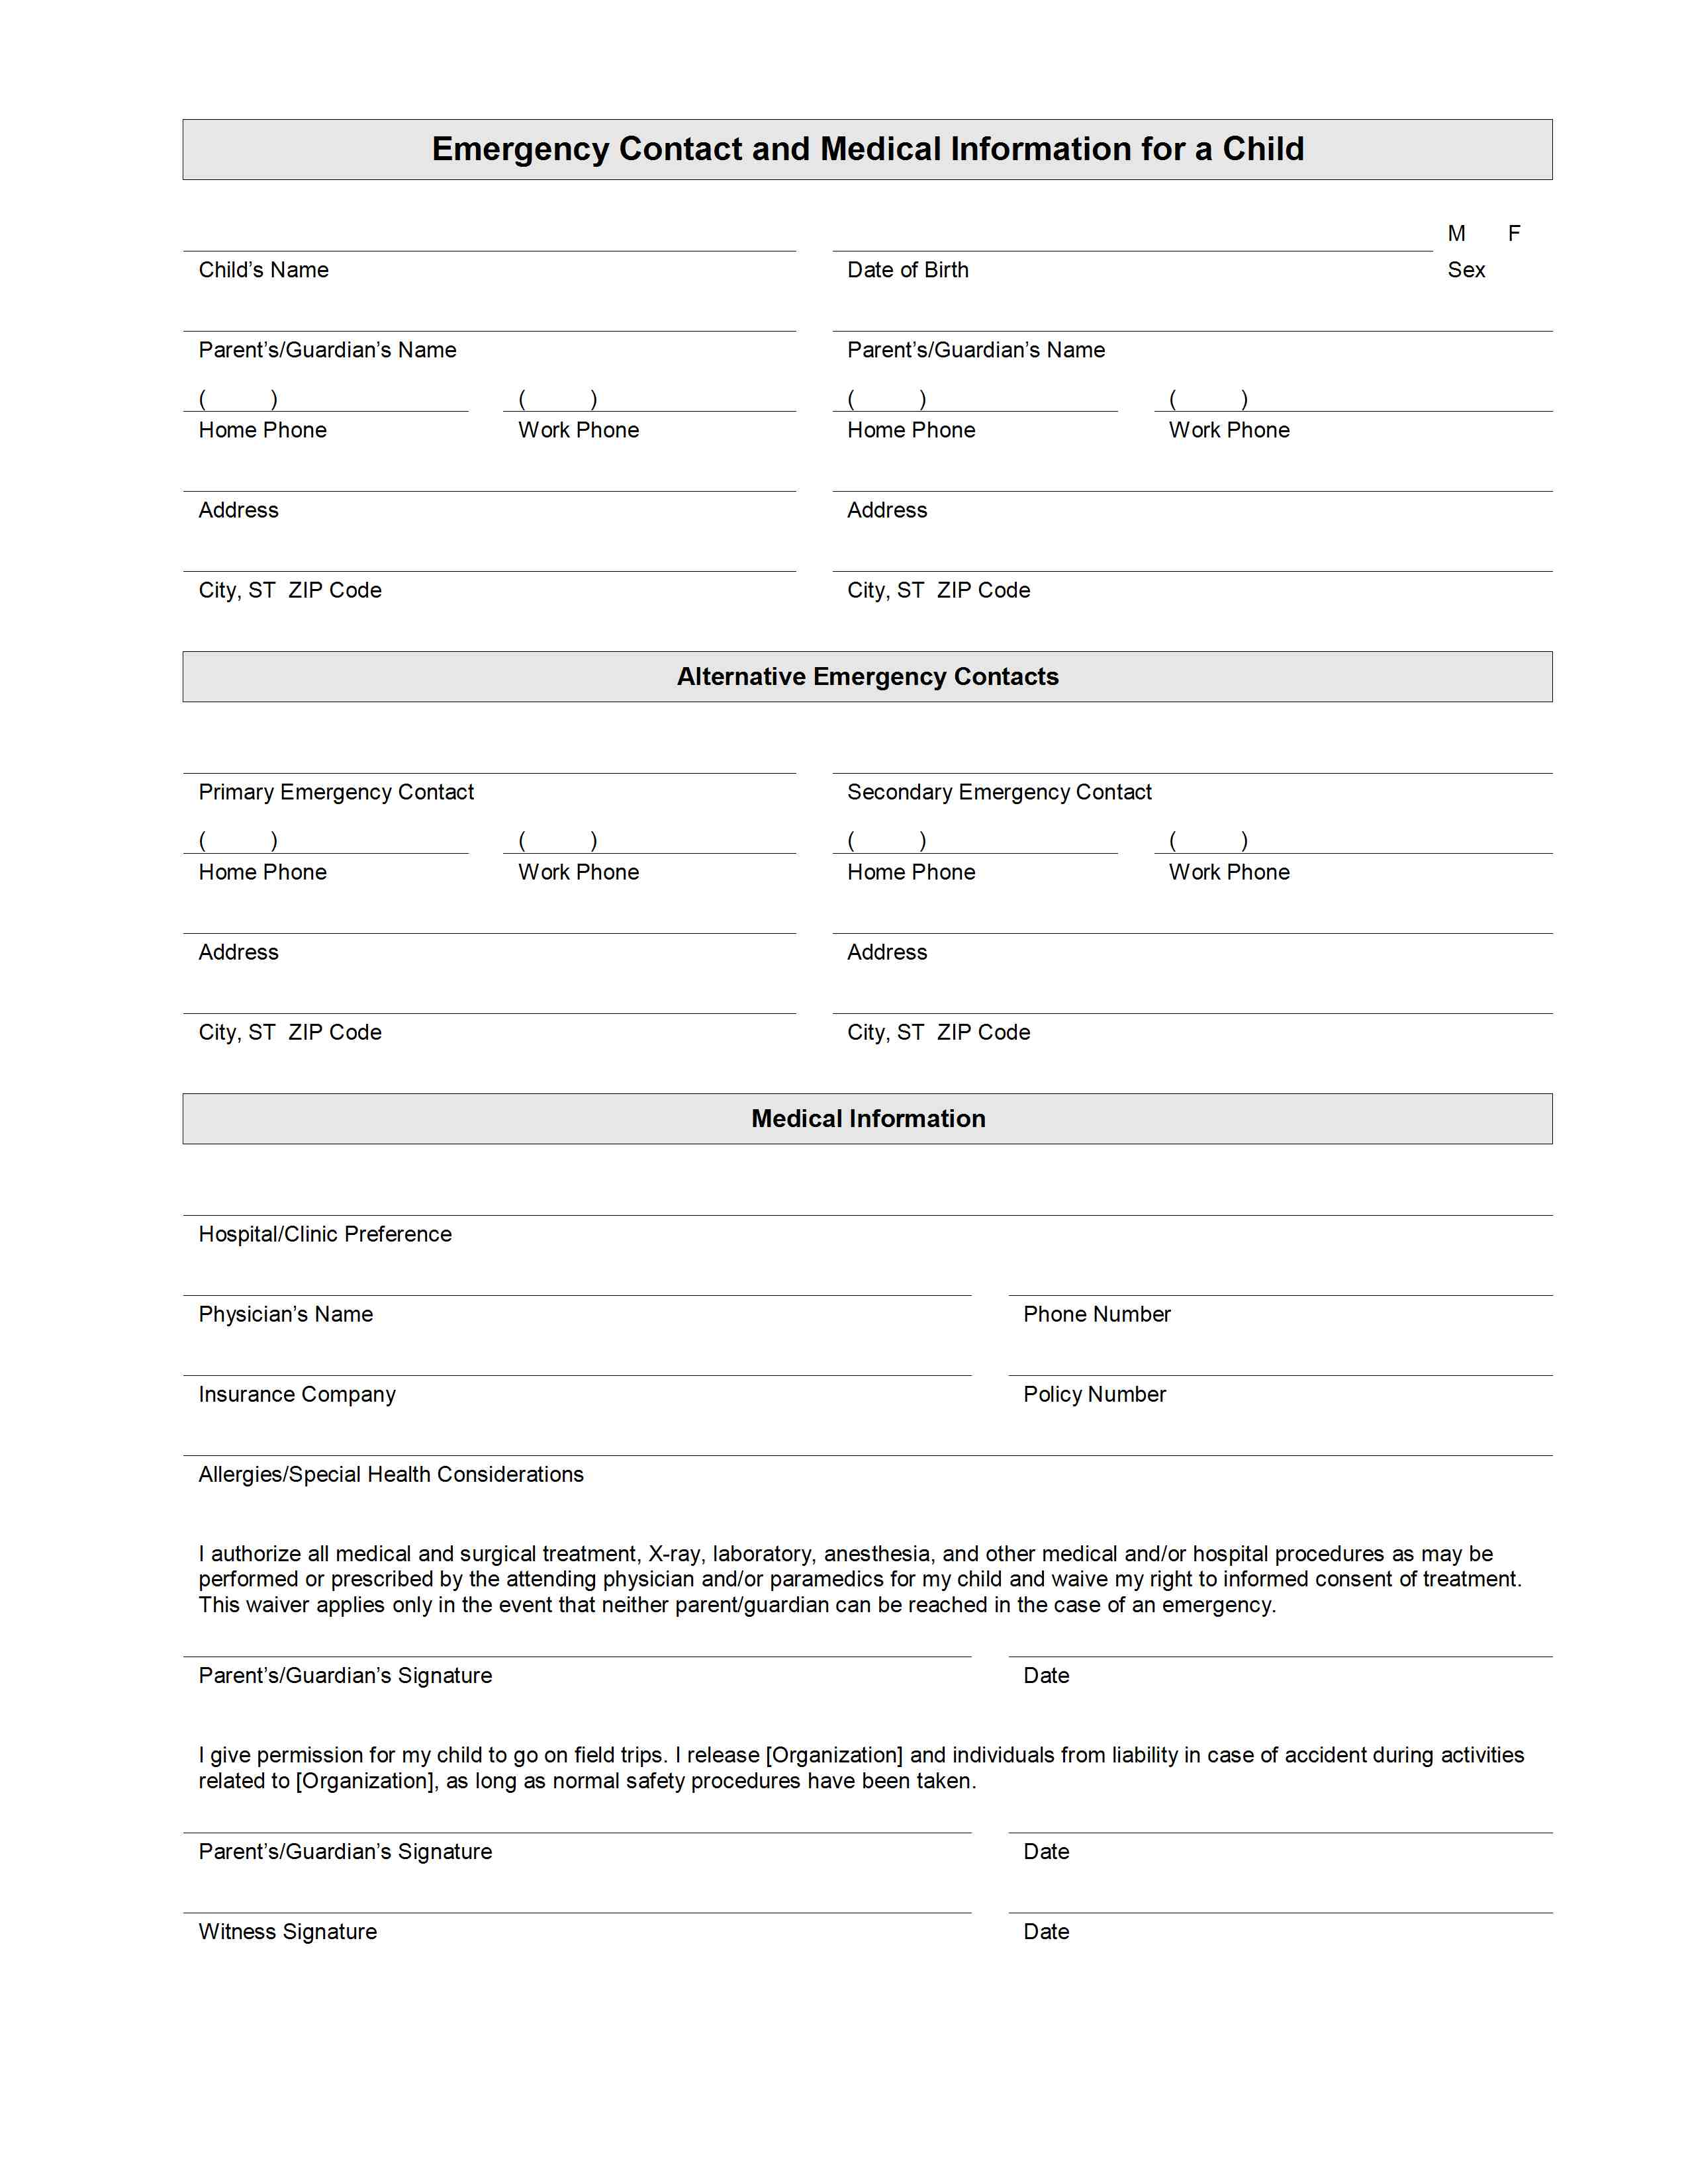 Child Emergency Contact And Medical Information Template